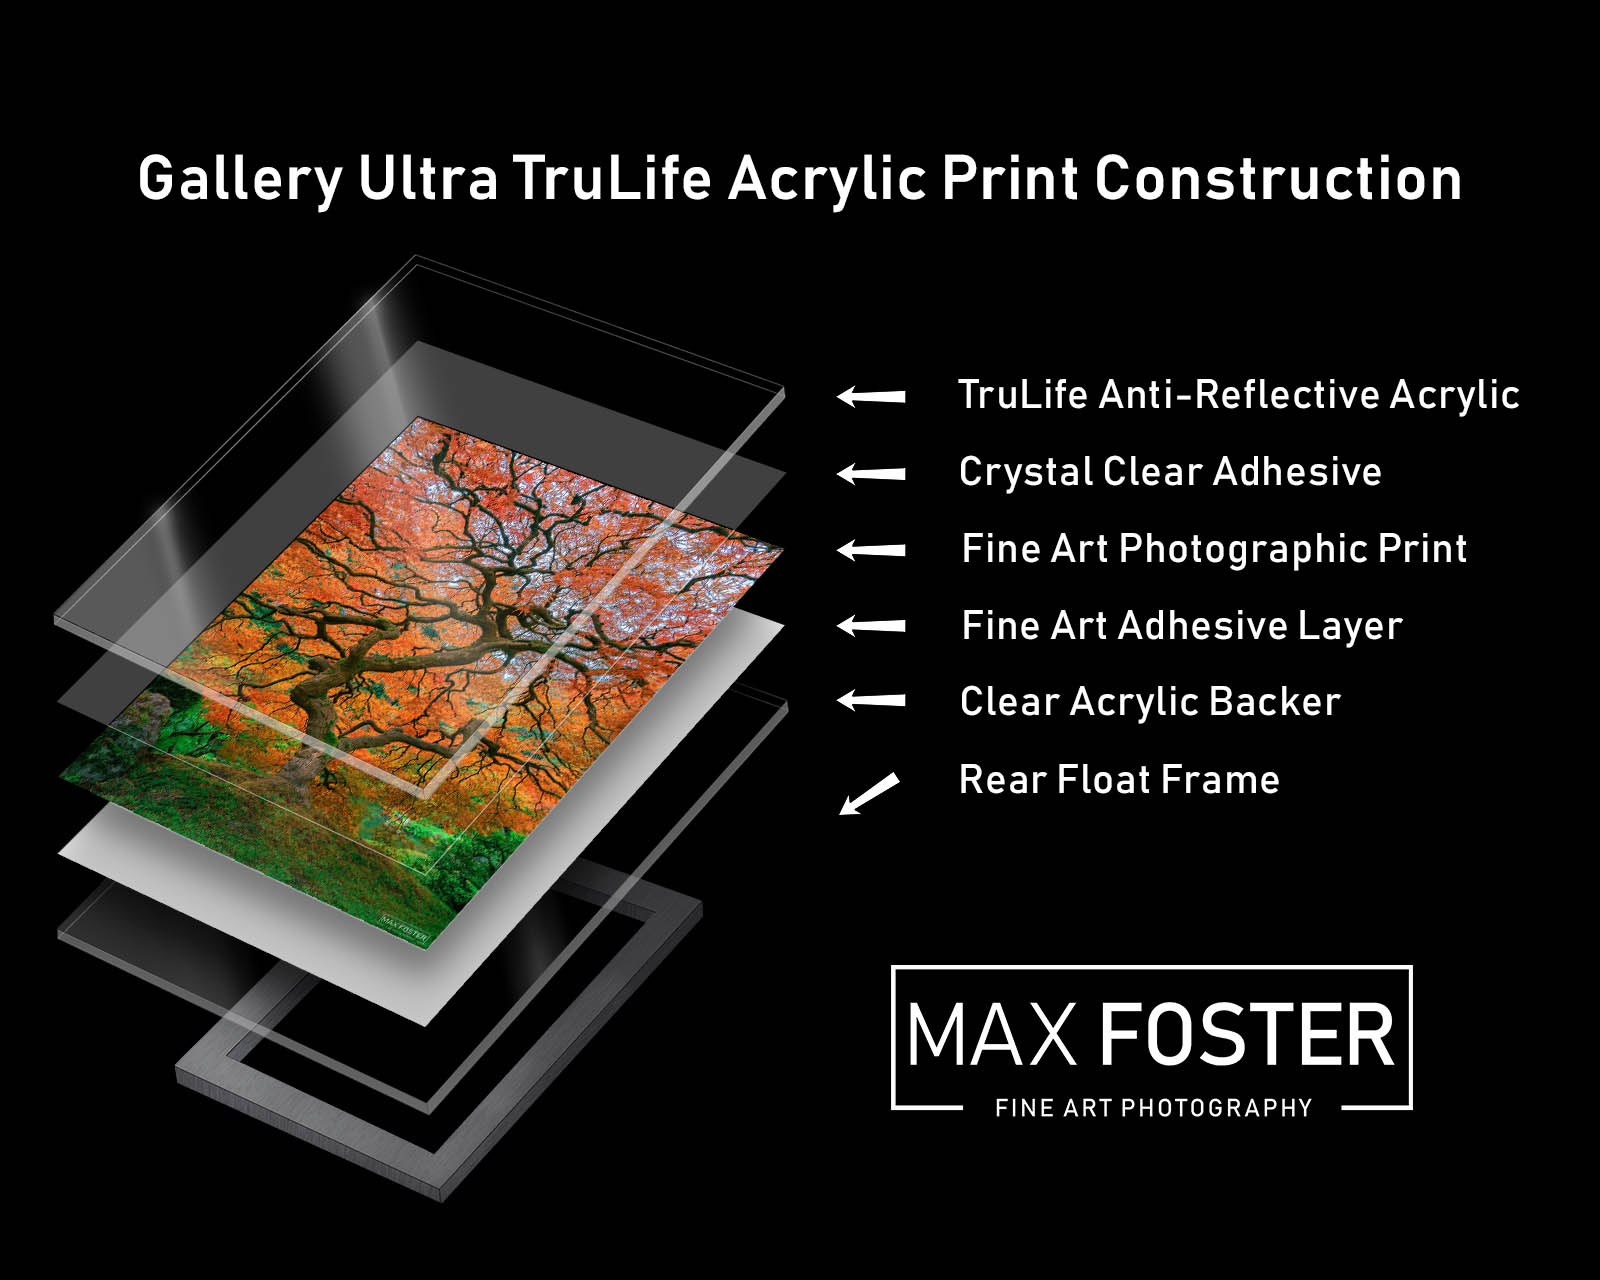 Gallery Ultra TruLife Acrylic Print Construction